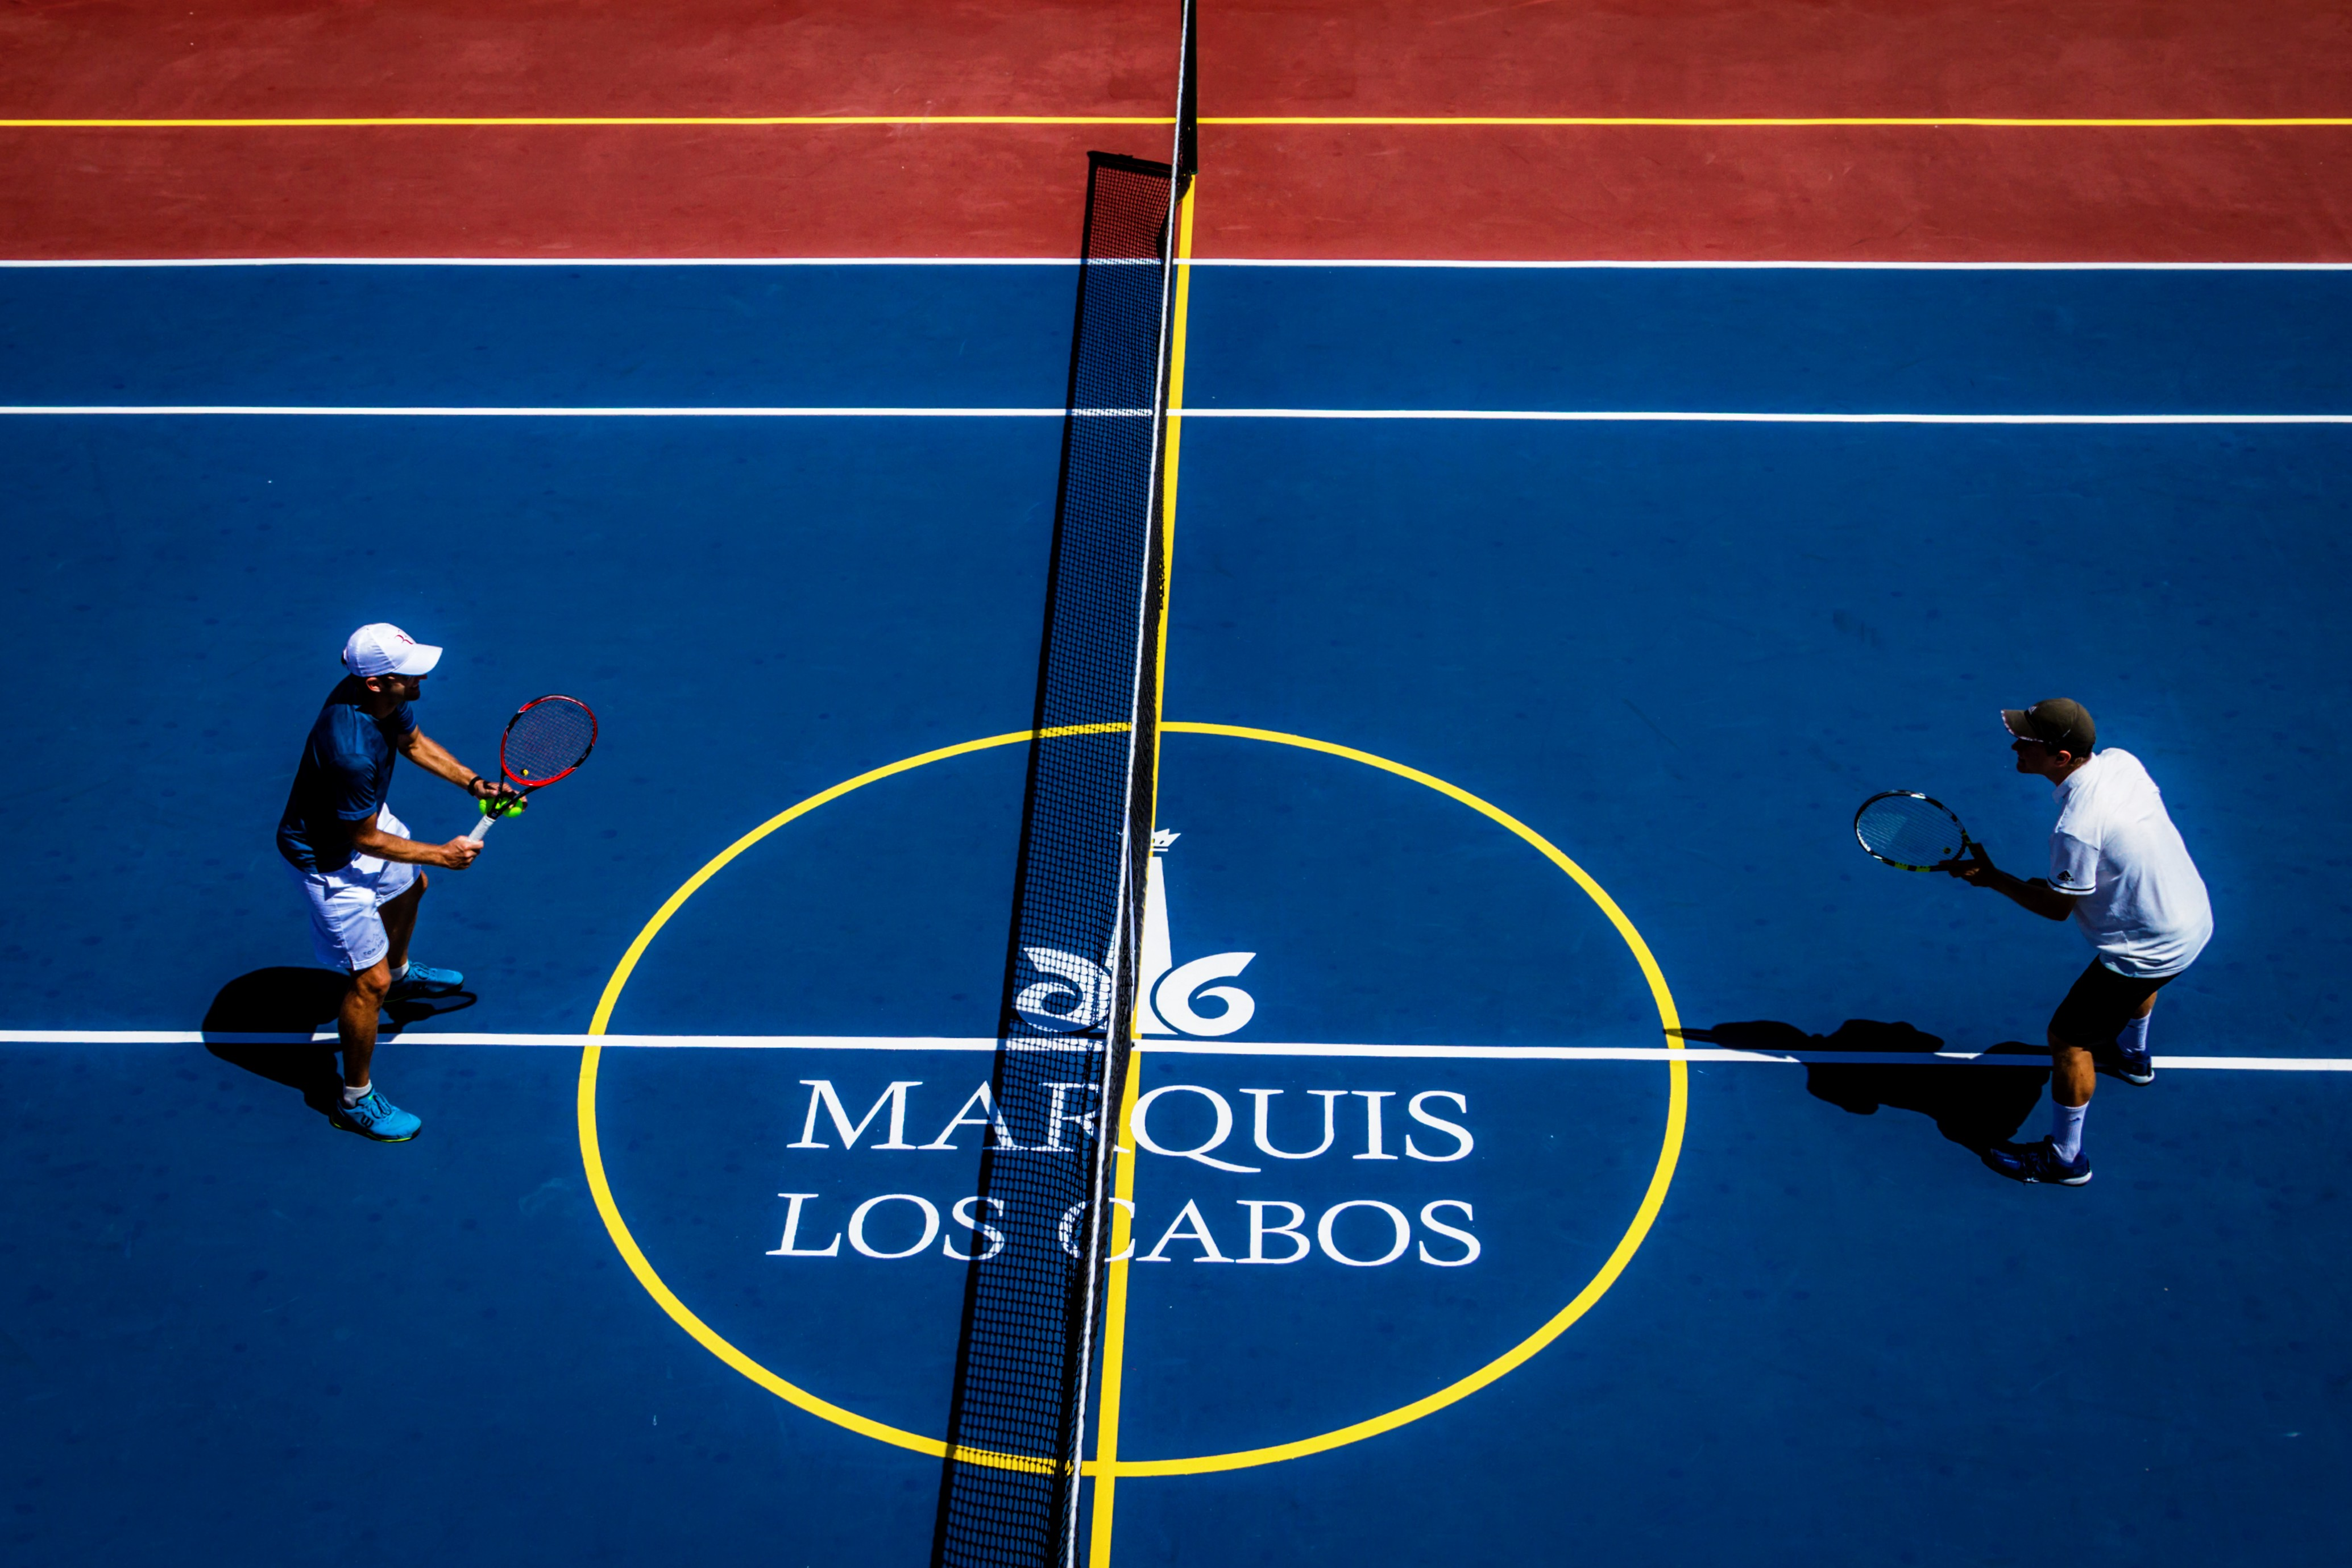 two people playing tenis